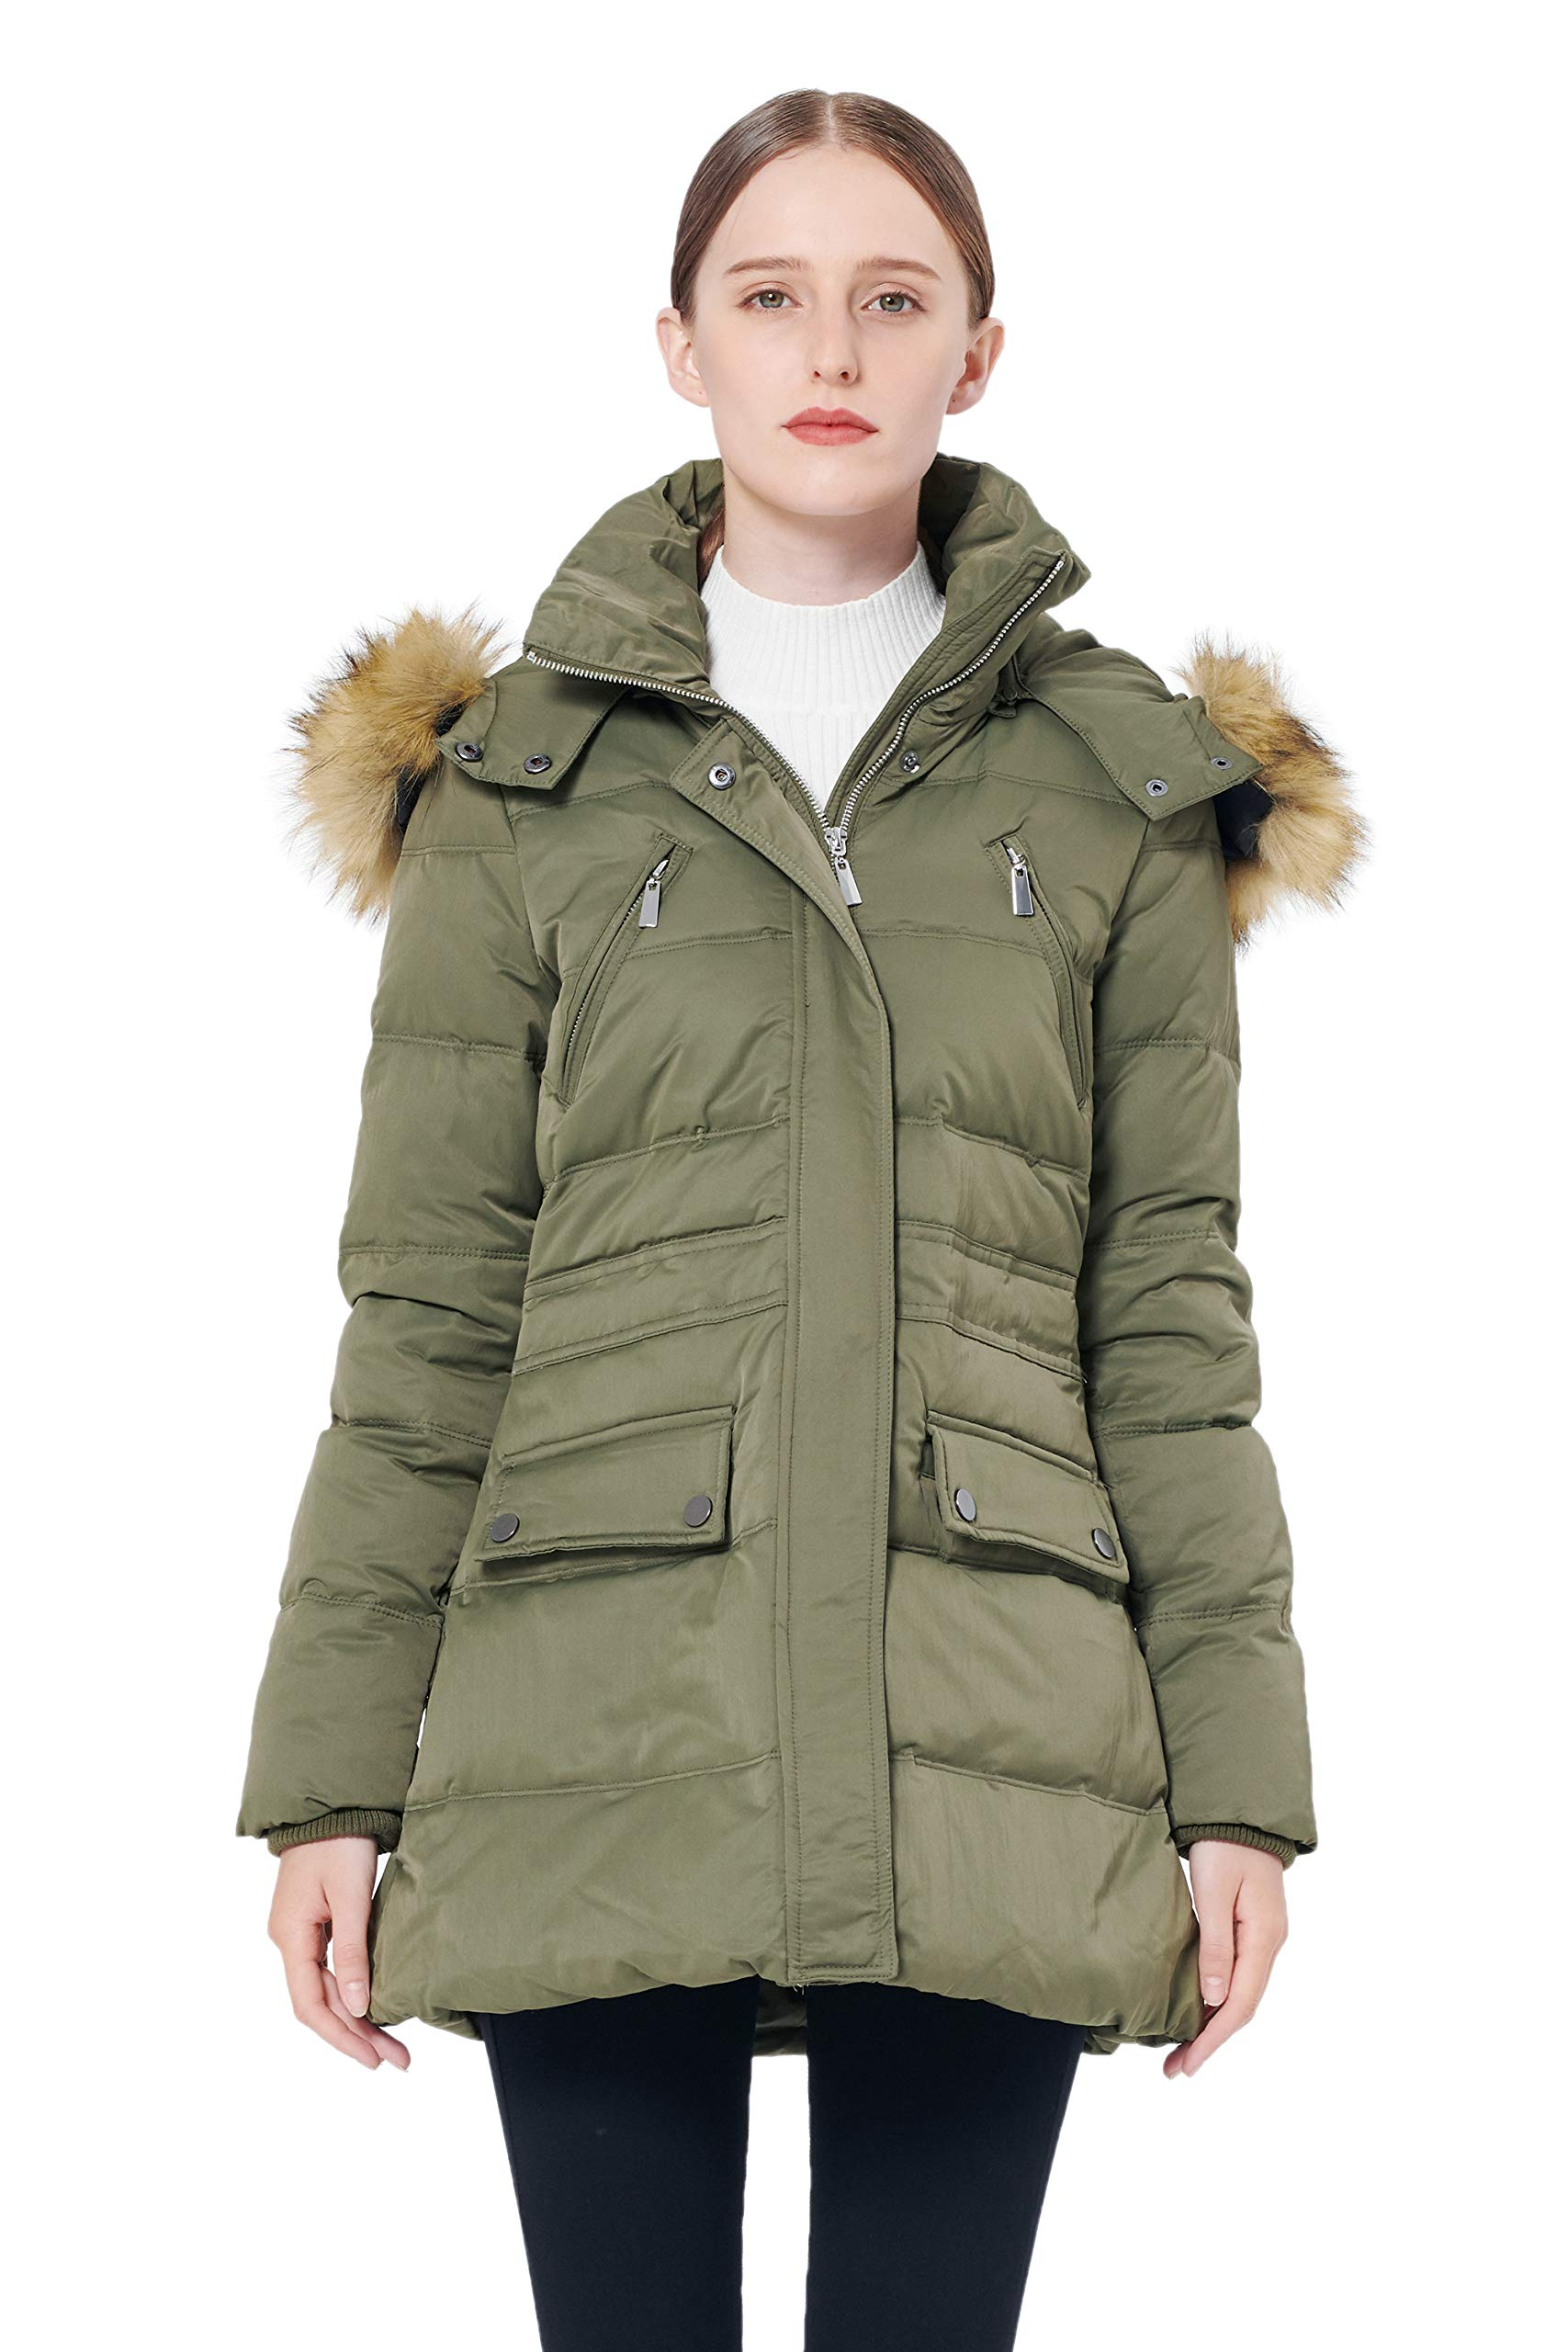 Orolay Women's Thickened Down Jacket Winter Coat Black